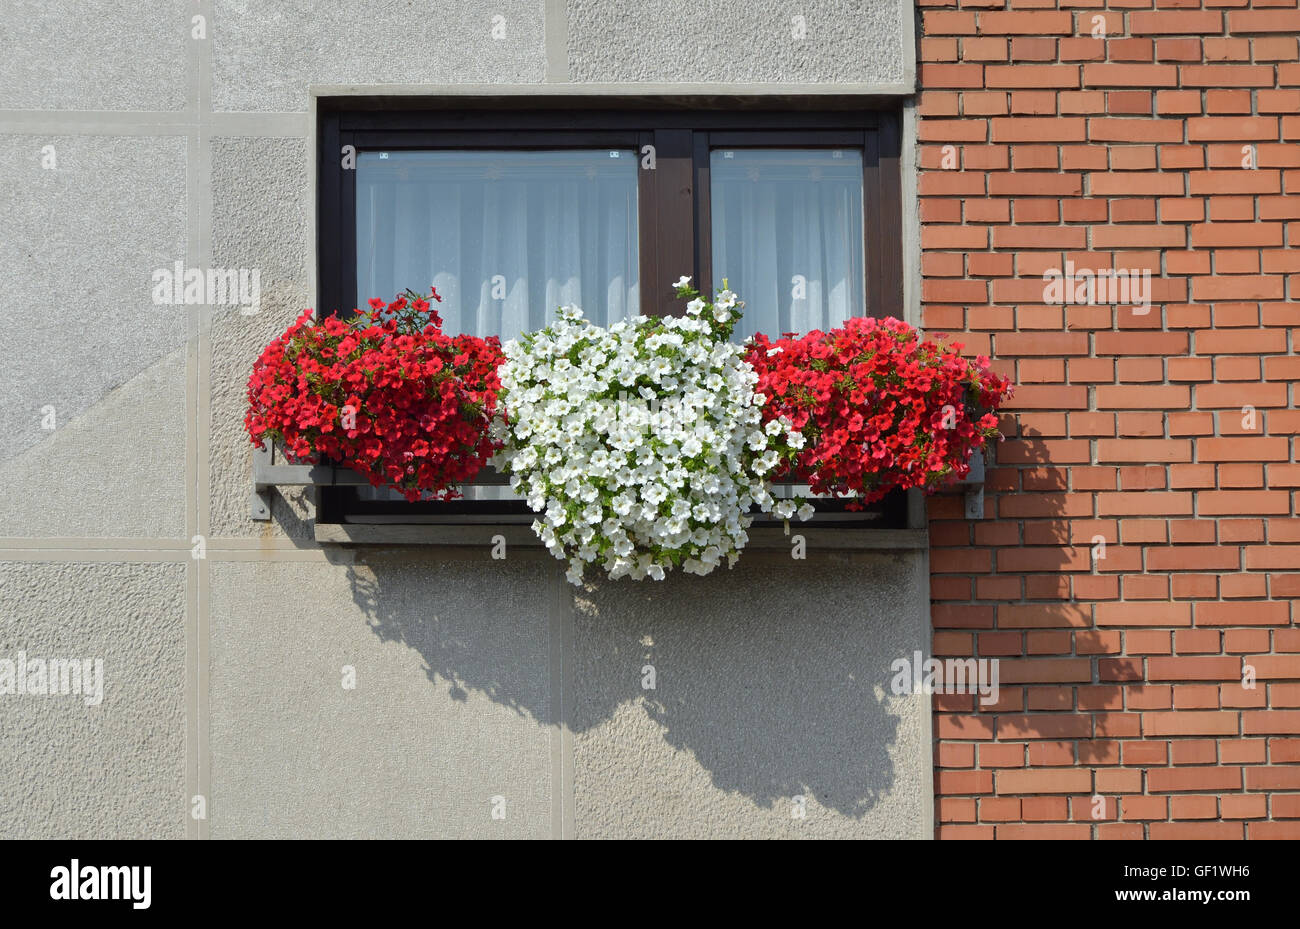 Window with pots of lush red and white flowers in a summer day Stock Photo